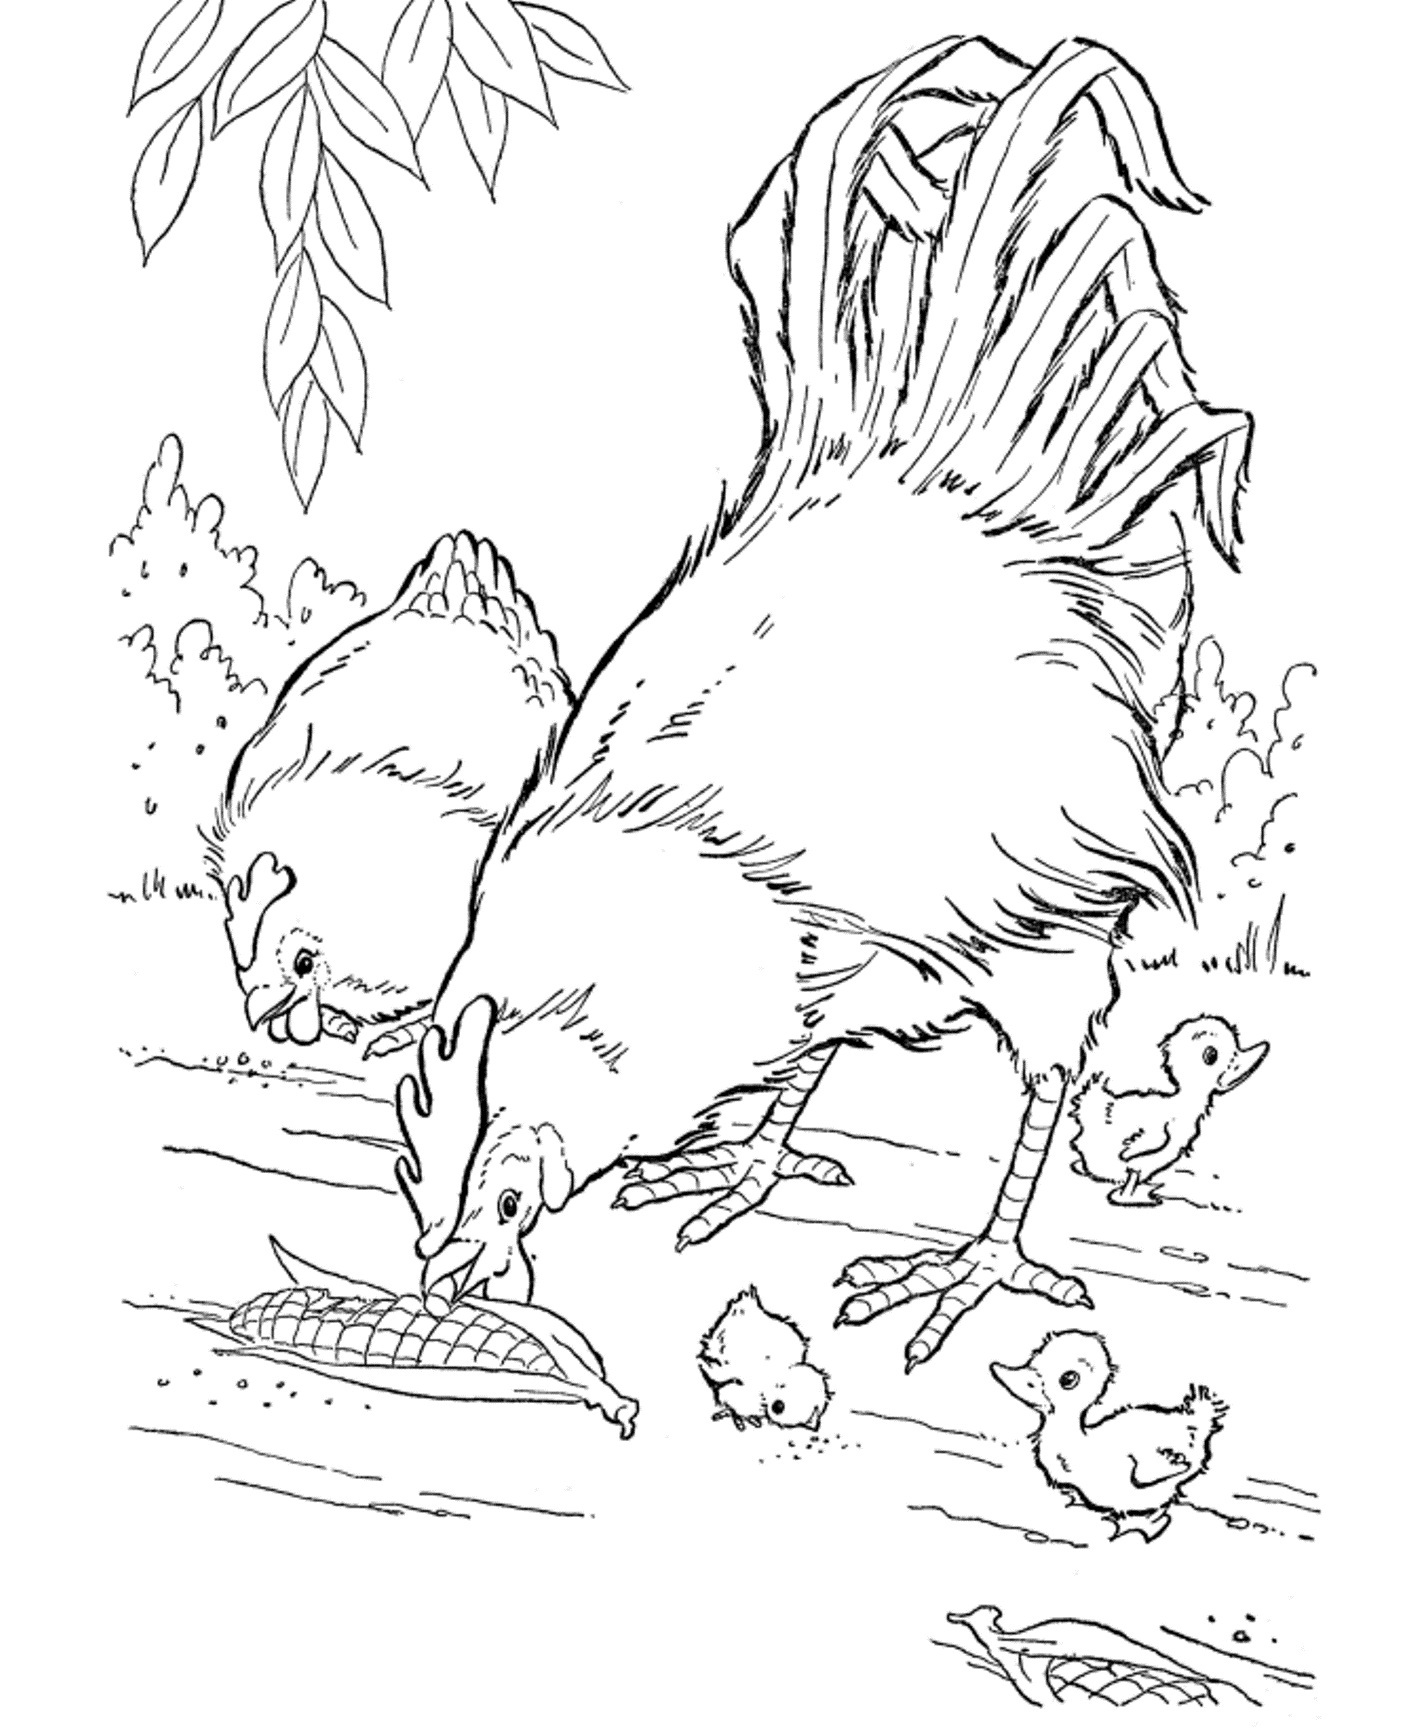 Rainforest Animals Coloring Pages at GetDrawings.com | Free for ...